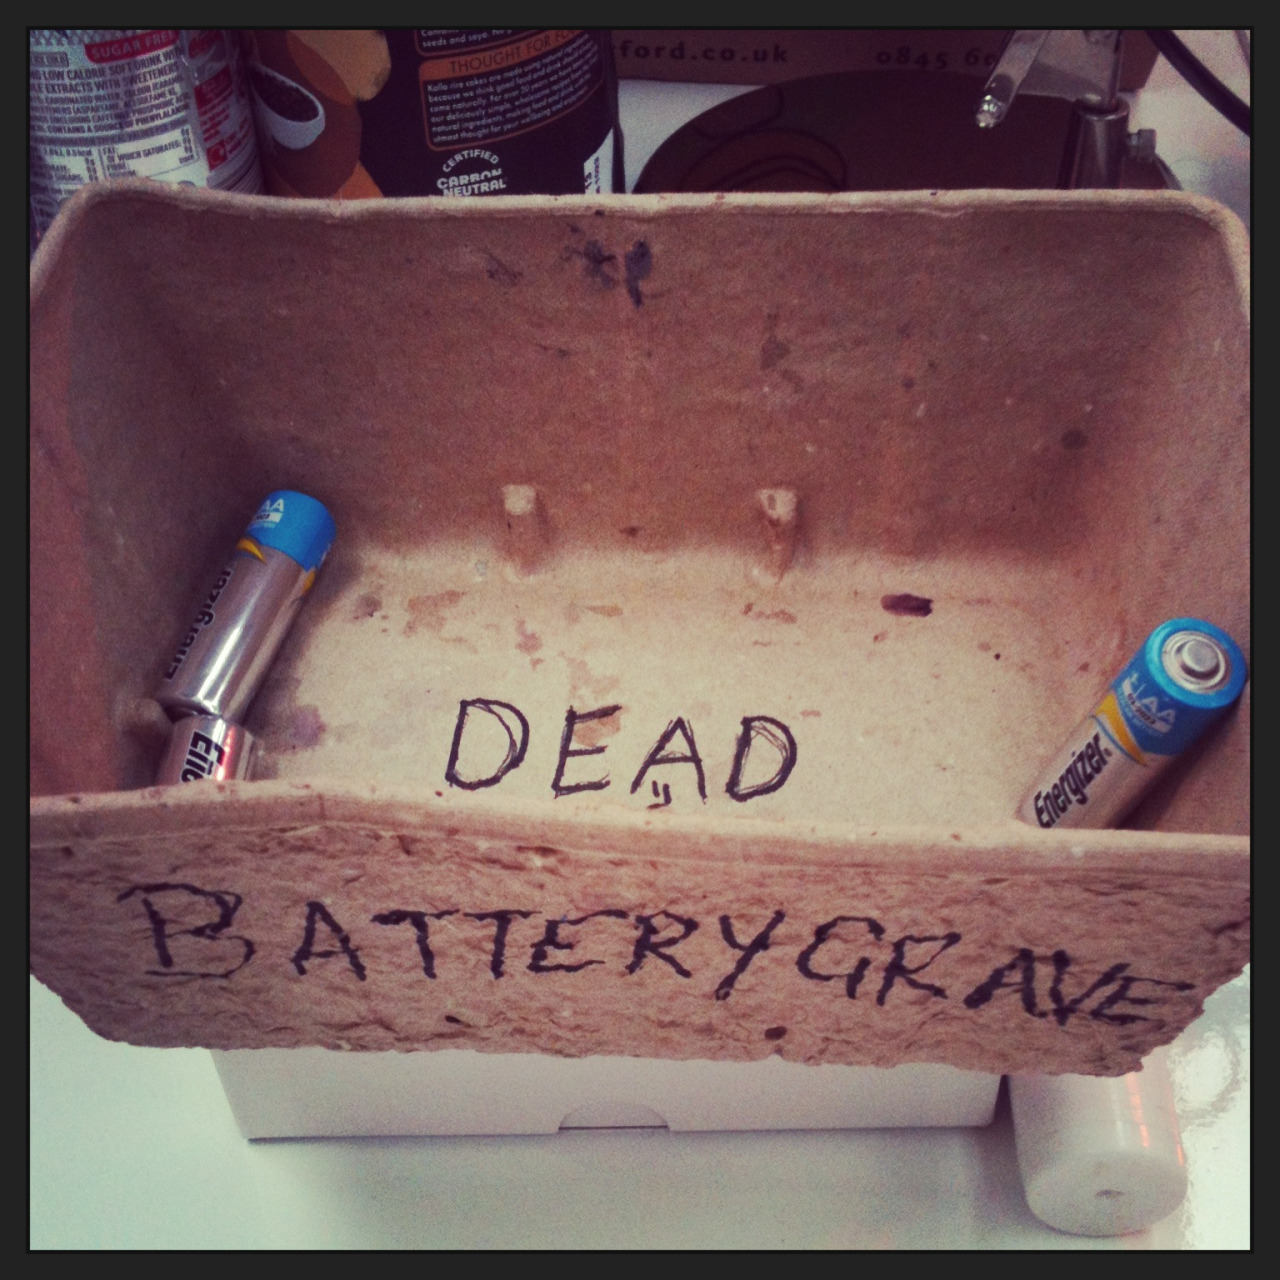 It's a worrying moment when you stumble across this on the office managers desk. RIP little batteries…